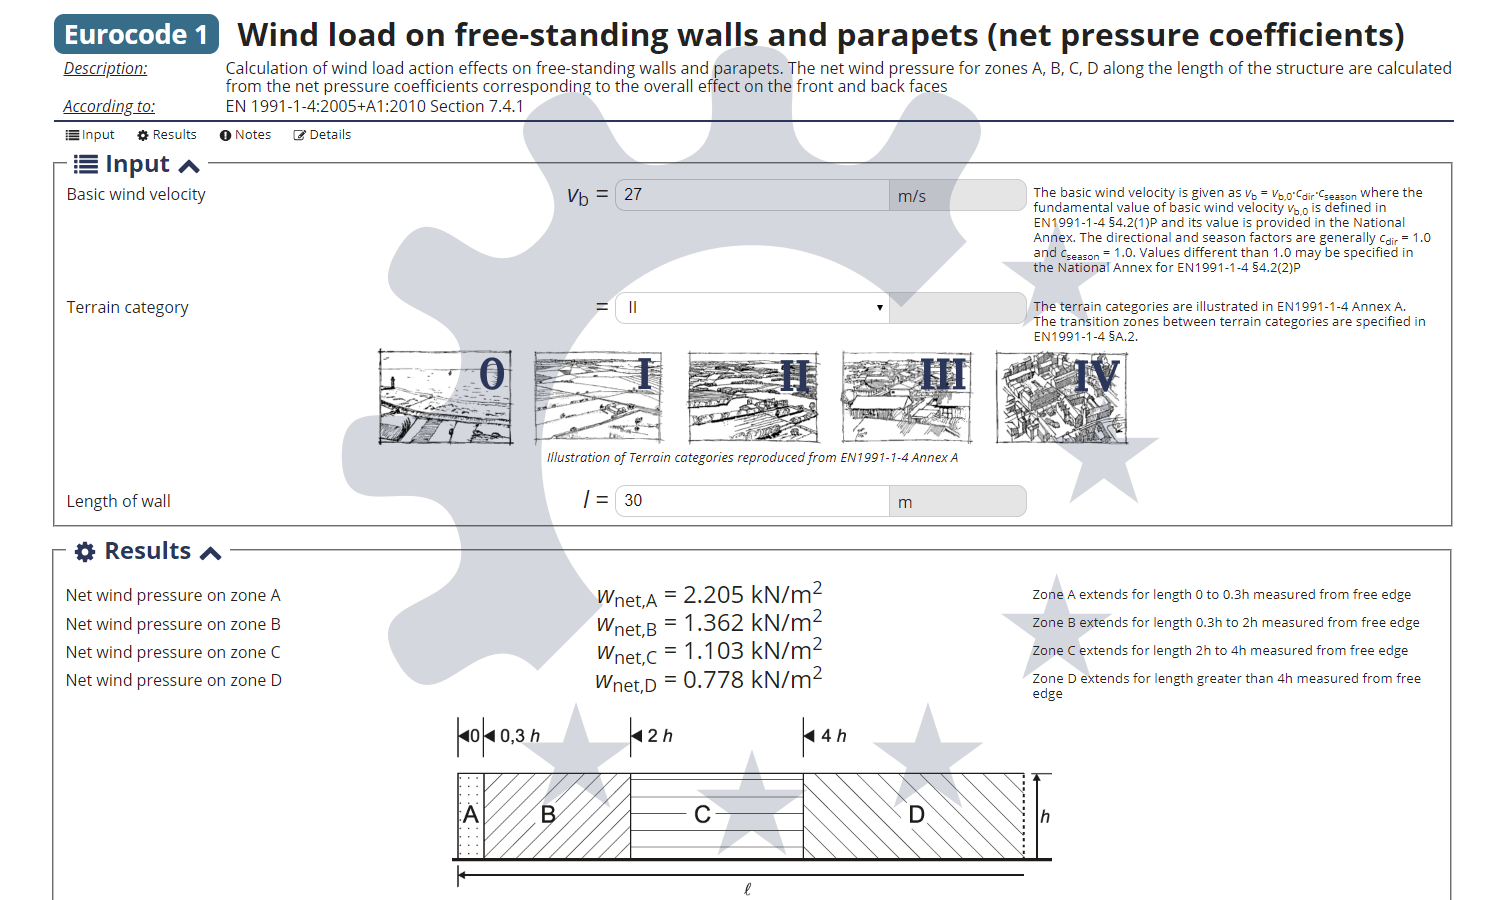 Calculation of wind load on free standing walls & parapets